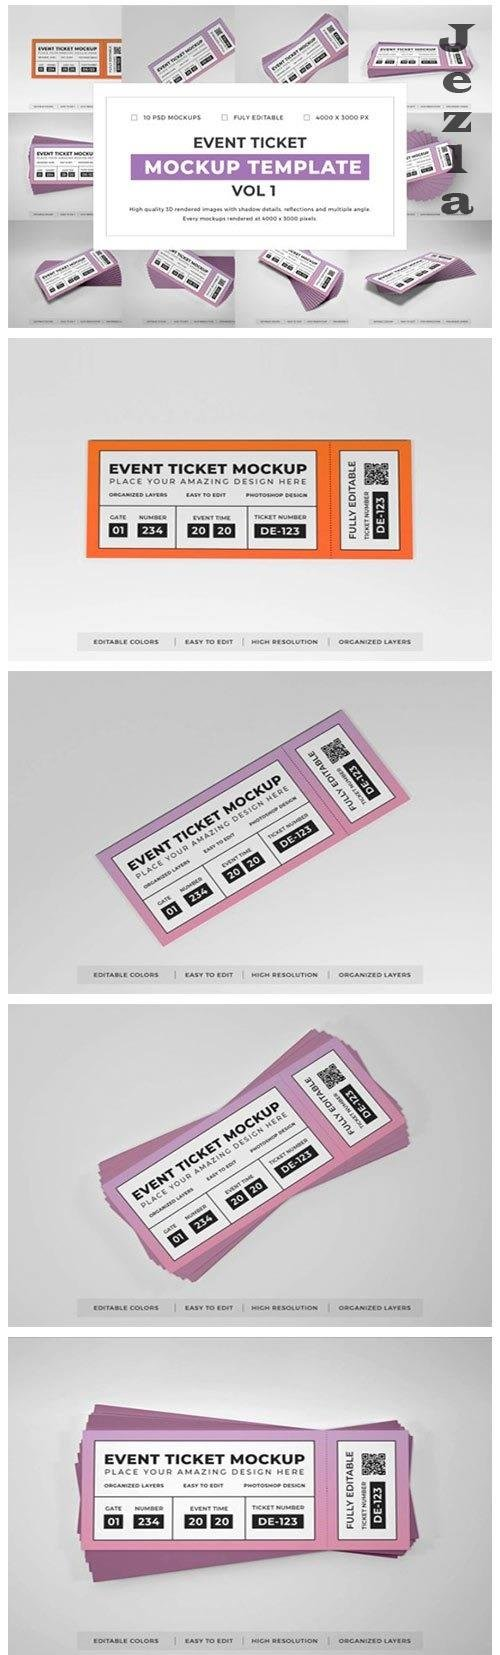 Event Ticket Mockup Template Bundle Vol 1 - 1052618